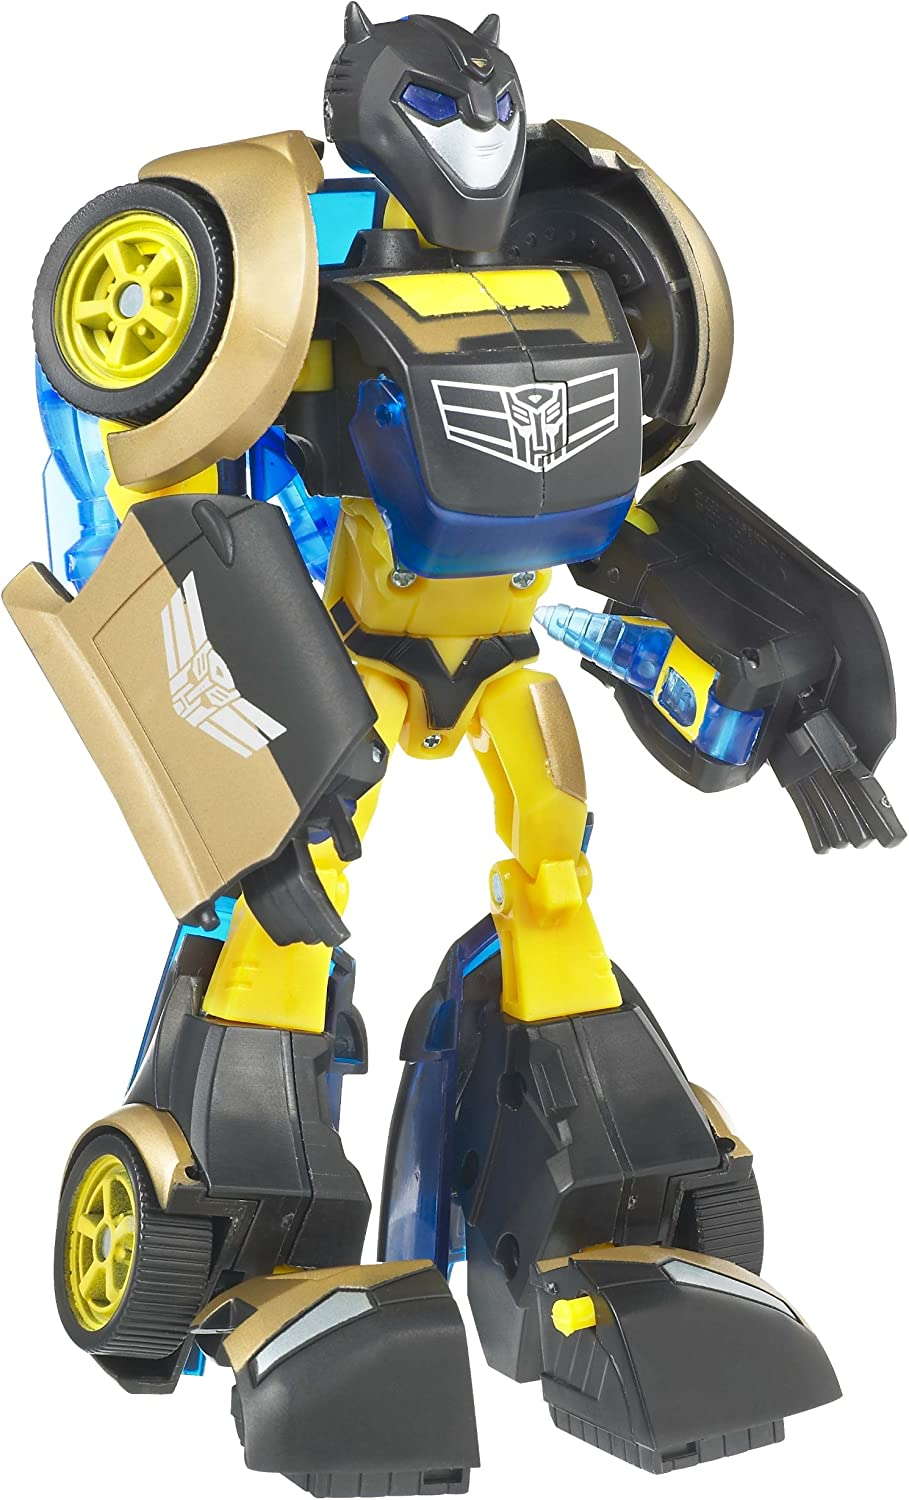 Hasbro Transformers Animated Deluxe  Elite Bumblebee